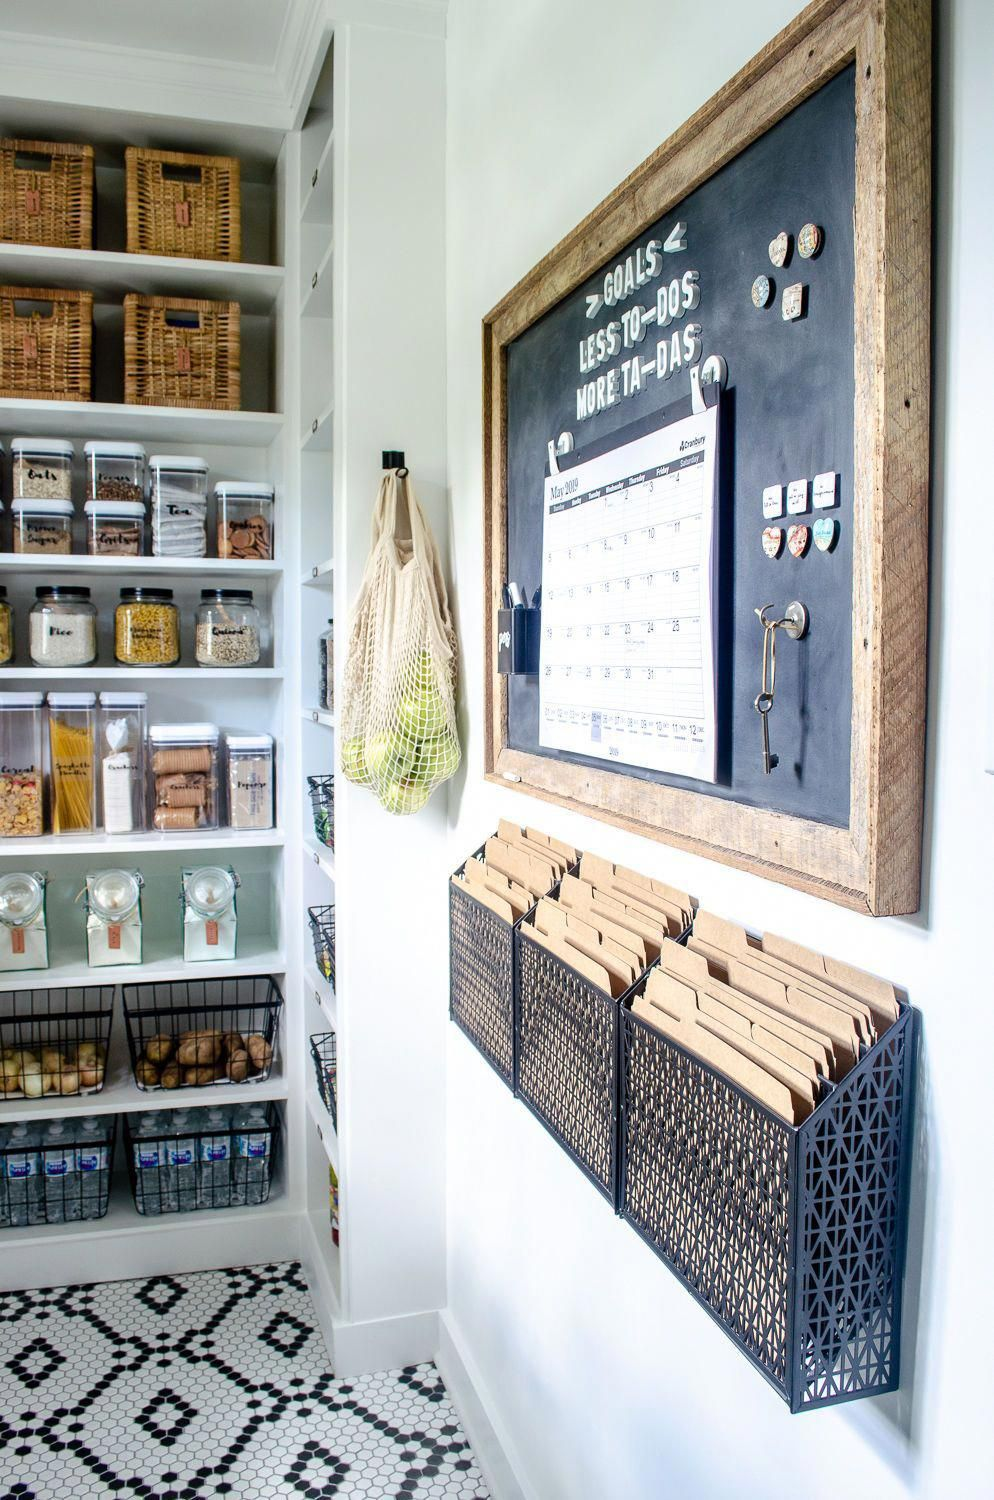 Walk in pantry organization idea using a magnetic board and command center. Loving all of the organization, pantry shelving, countertops, window garden...love it all! Narrow walk in pantry design with countertop and shelving #pantry #pantrygoals #pantryorganization #pantrydesign #kitchenorganization